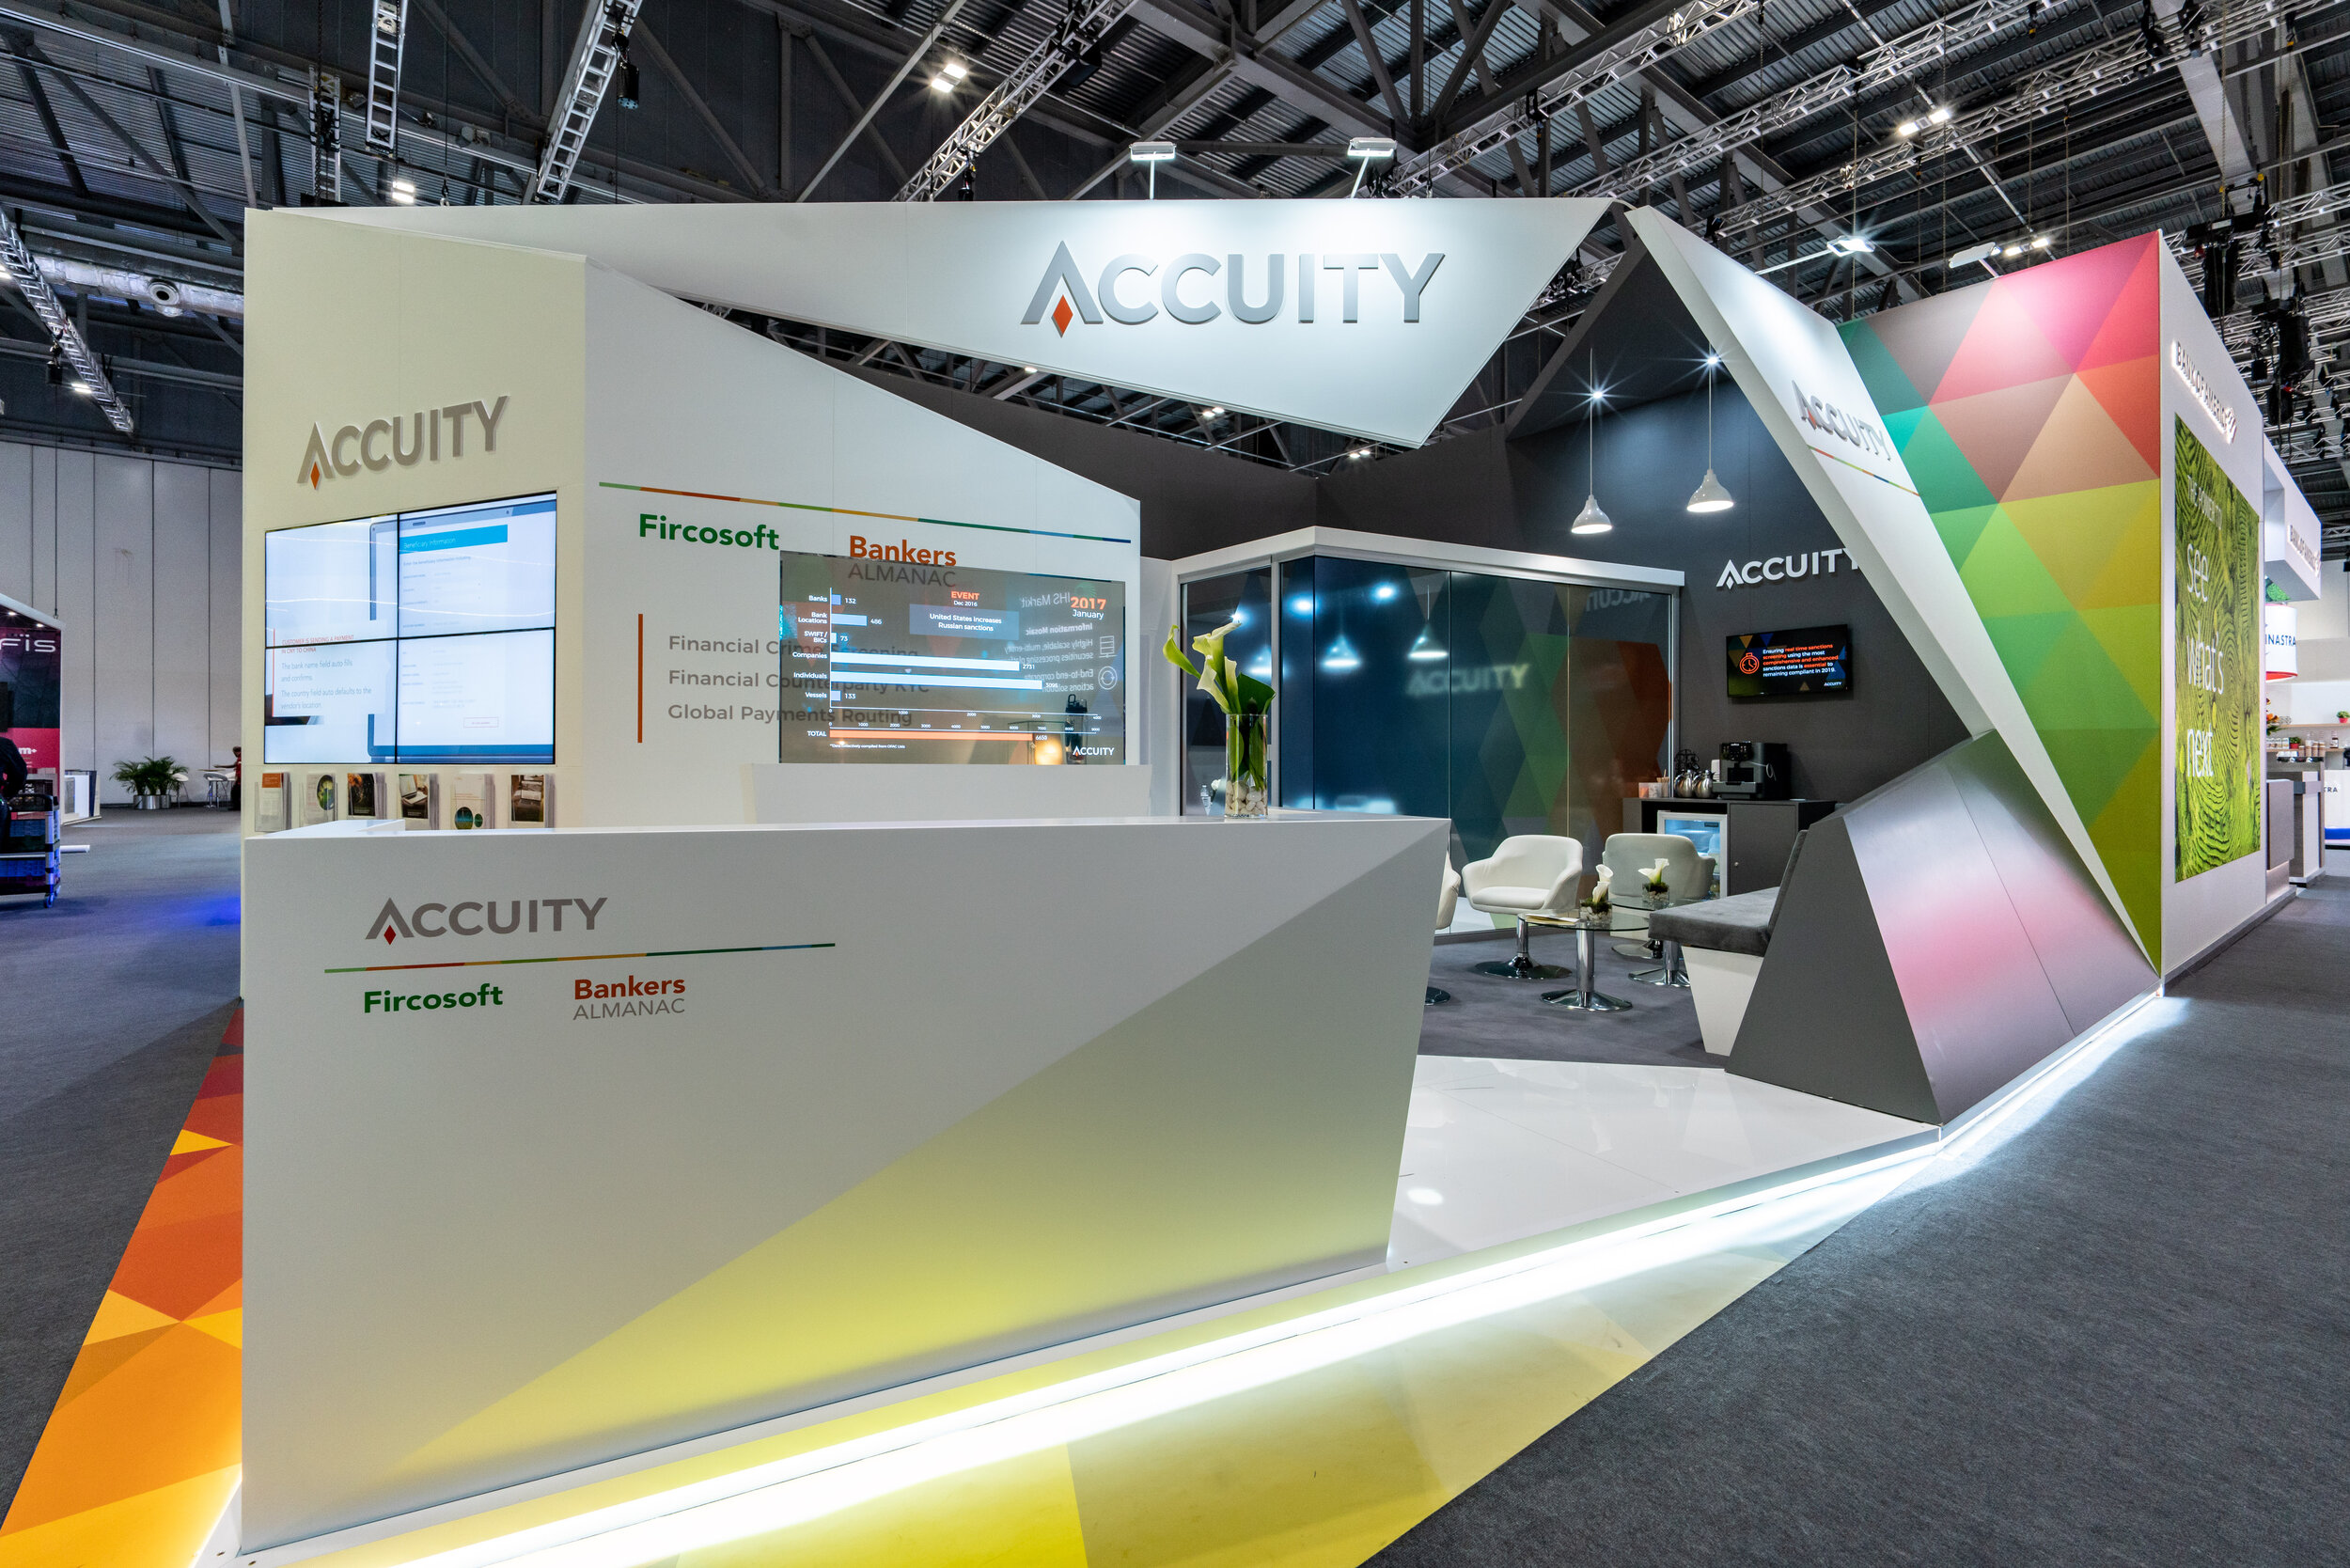 Accuity at Sibos, London. 48m2.